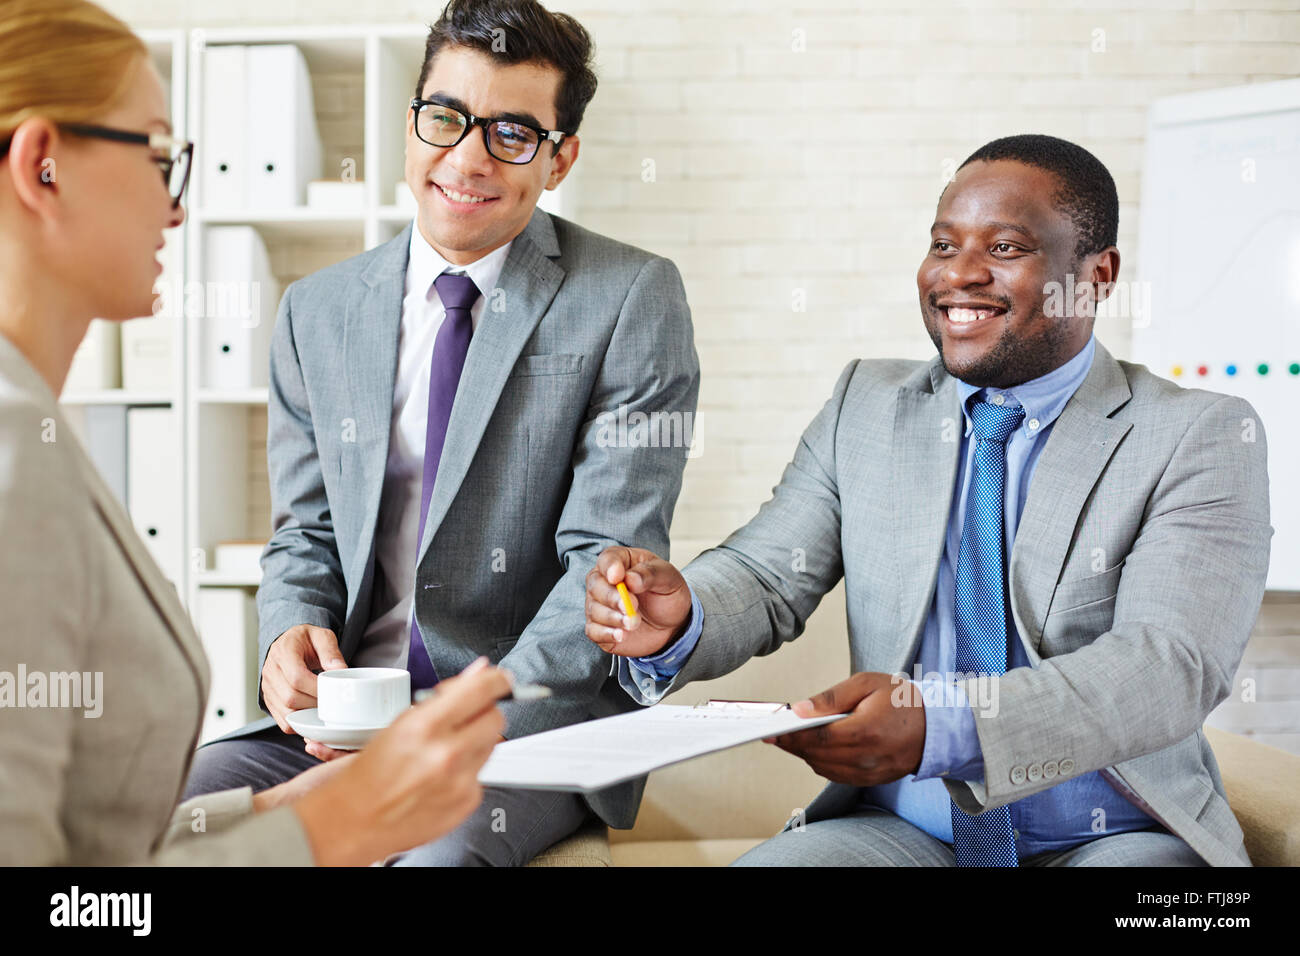 Offering to sign contract - Stock Image